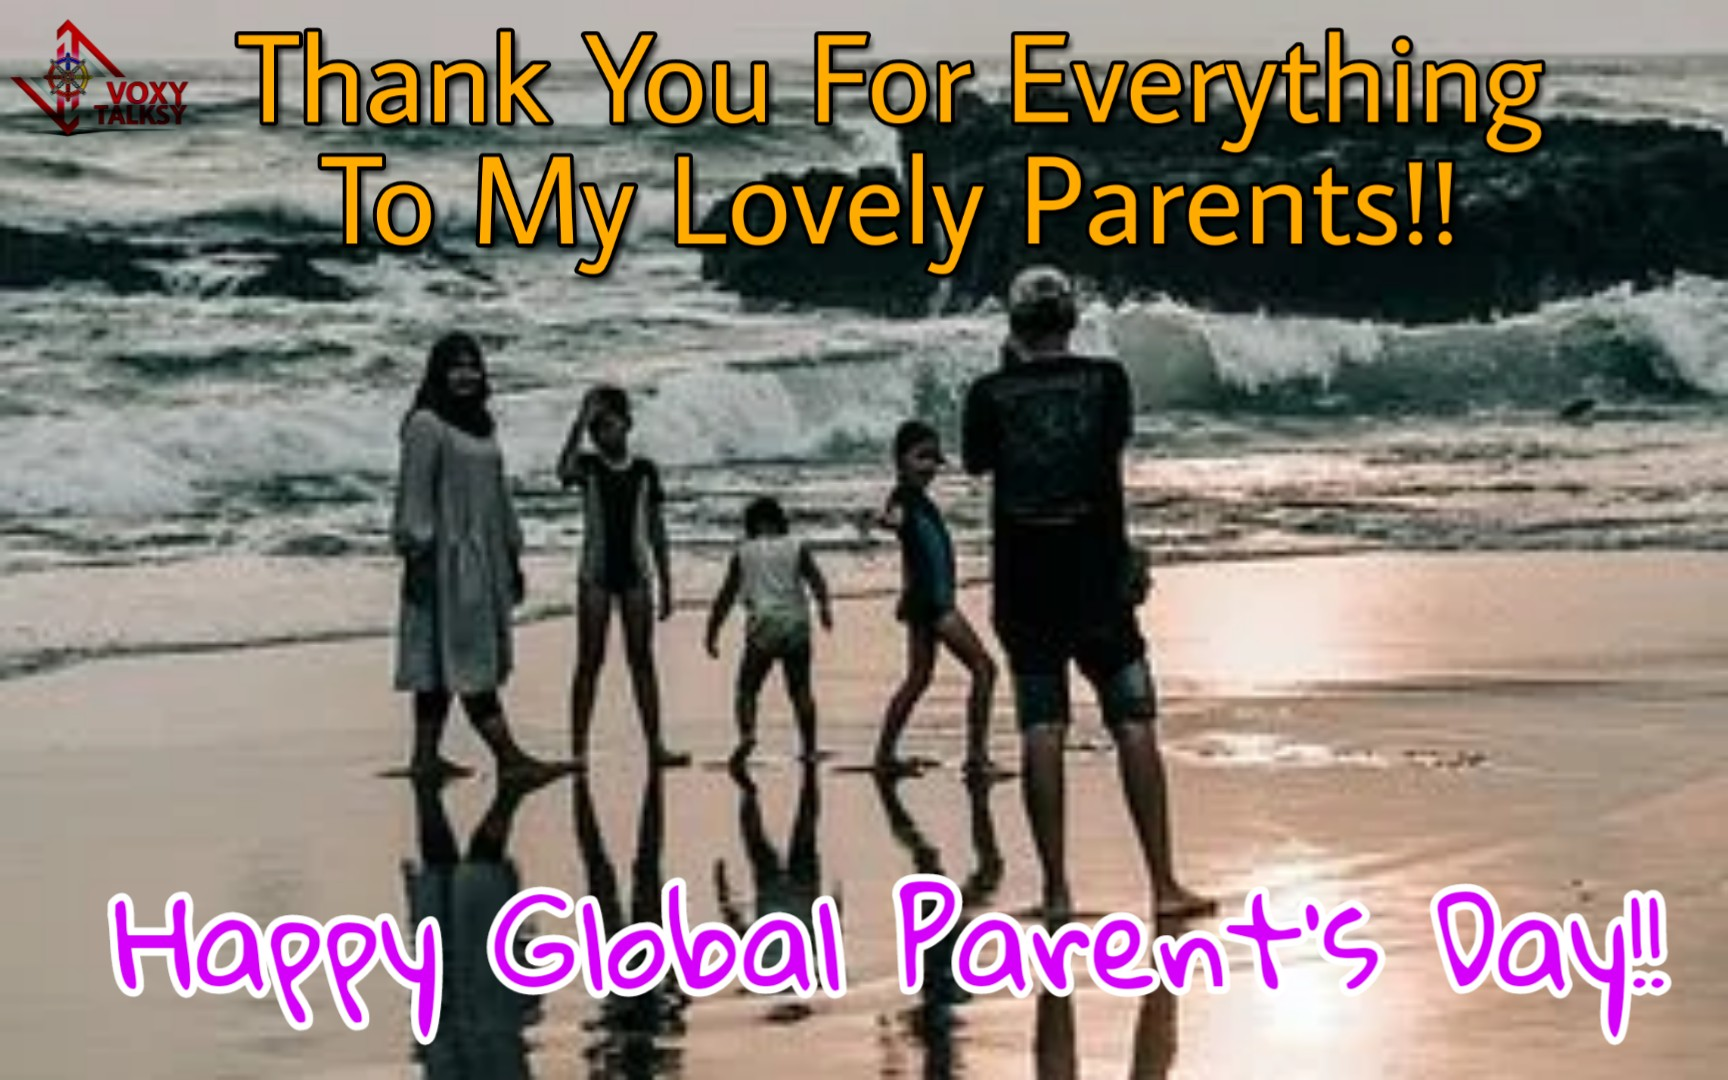 Global Day Of Parents 2020: Wishes, About & Celebration | Parents Day | VoxyTalksy